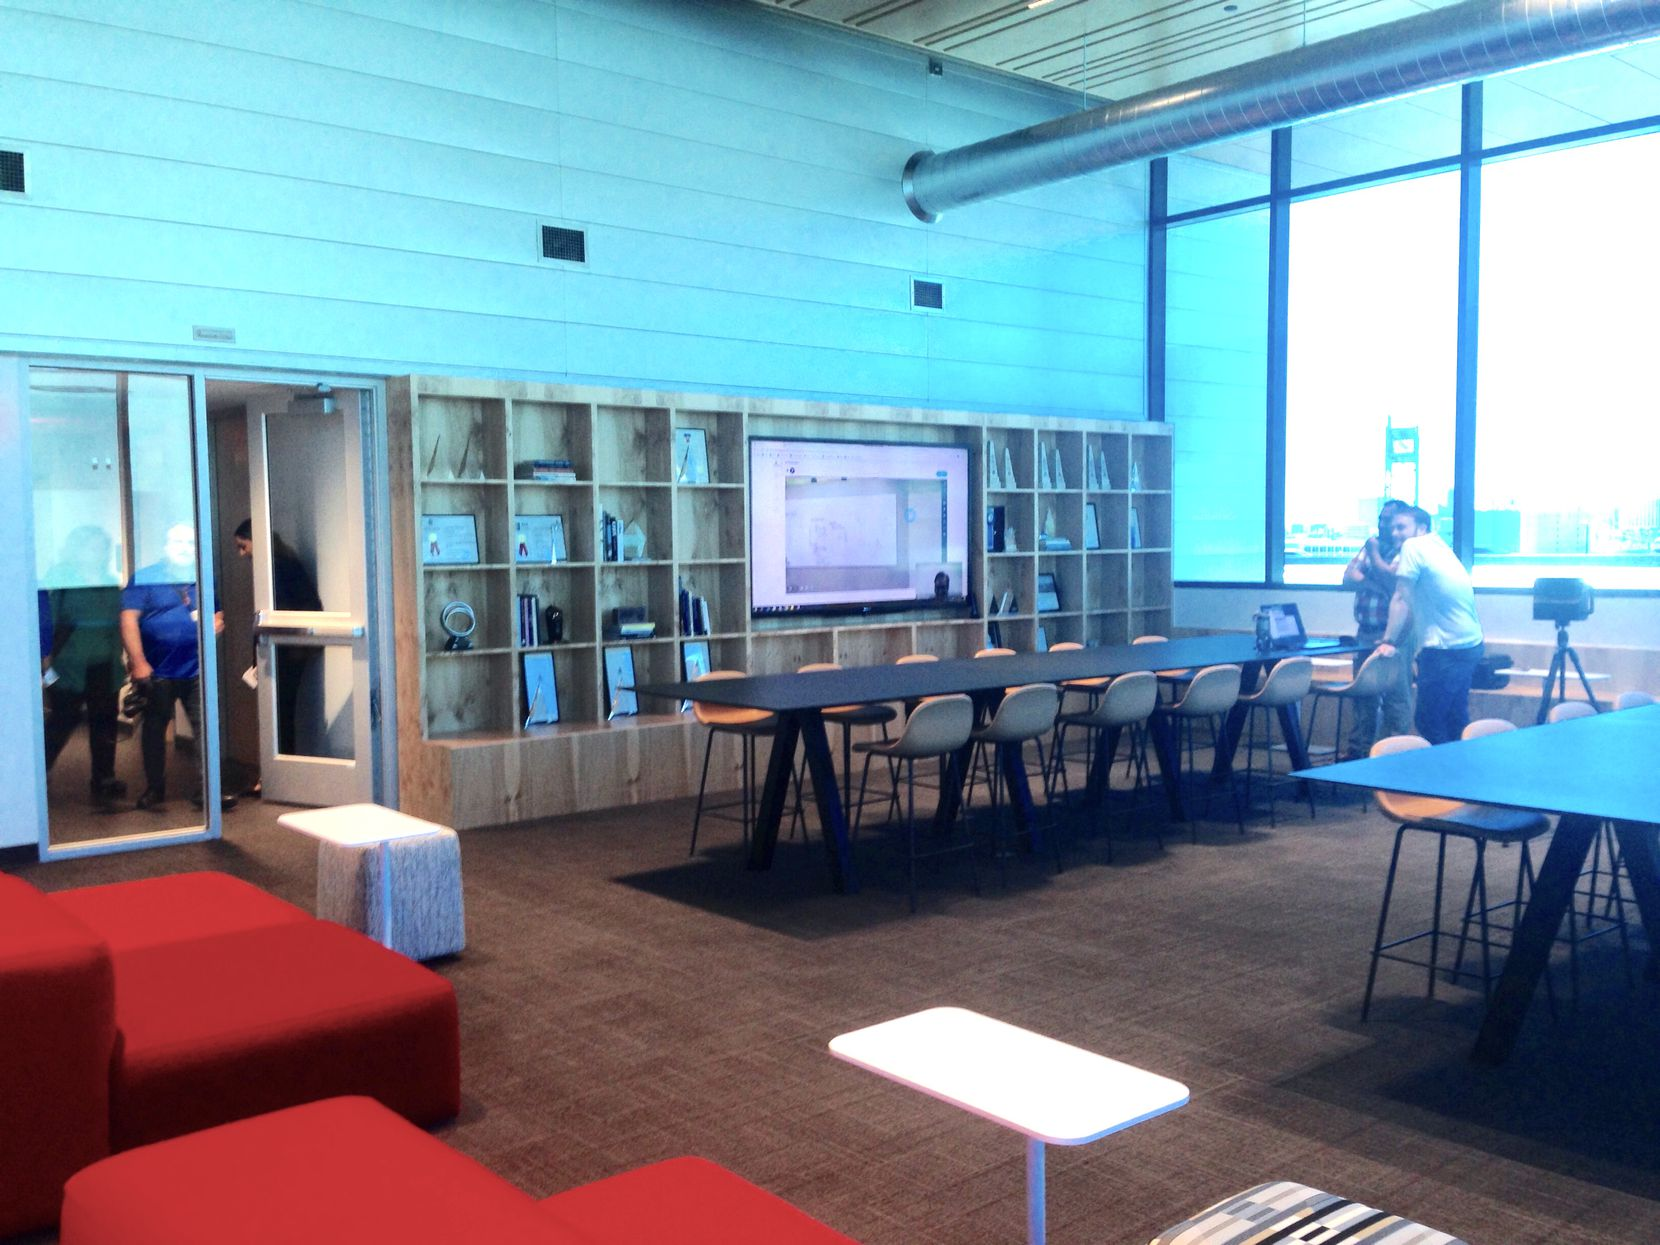 Corgan's lounge area in the new Luminary building in downtown Dallas.